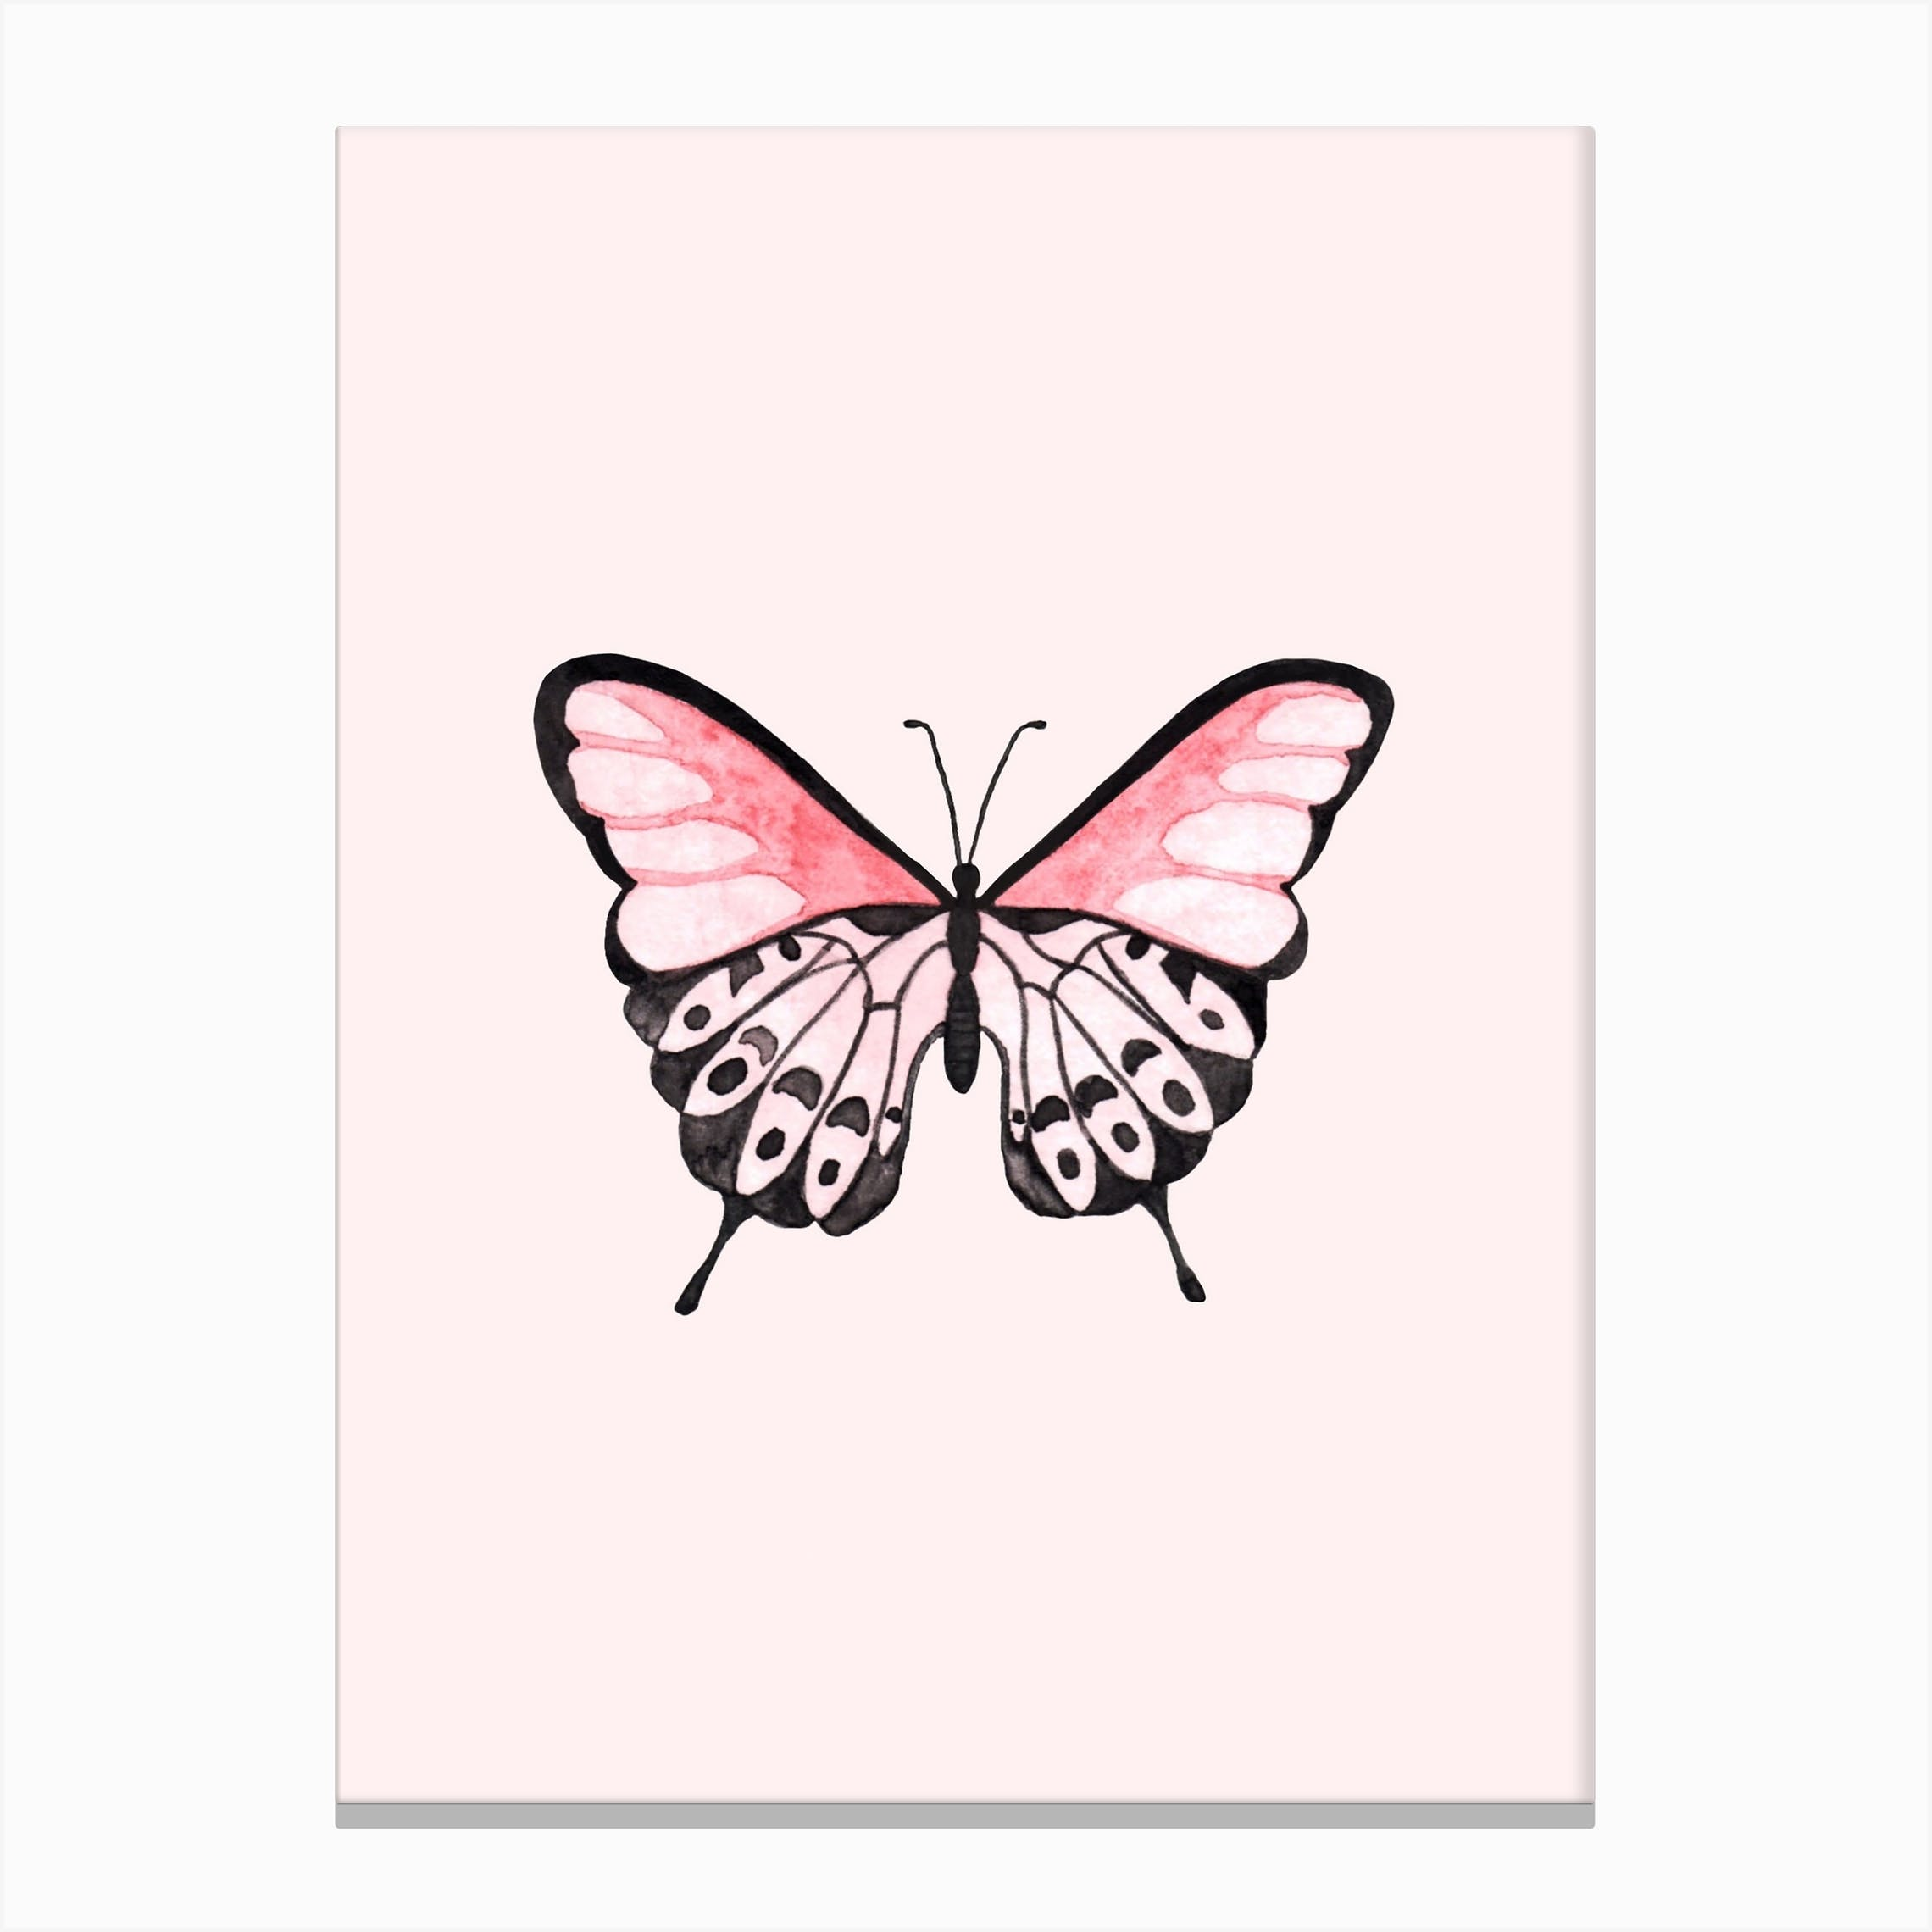 PINK RED HEART BUTTERFLIES ABSTRACT CANVAS PRINT PICTURE READY TO HANG